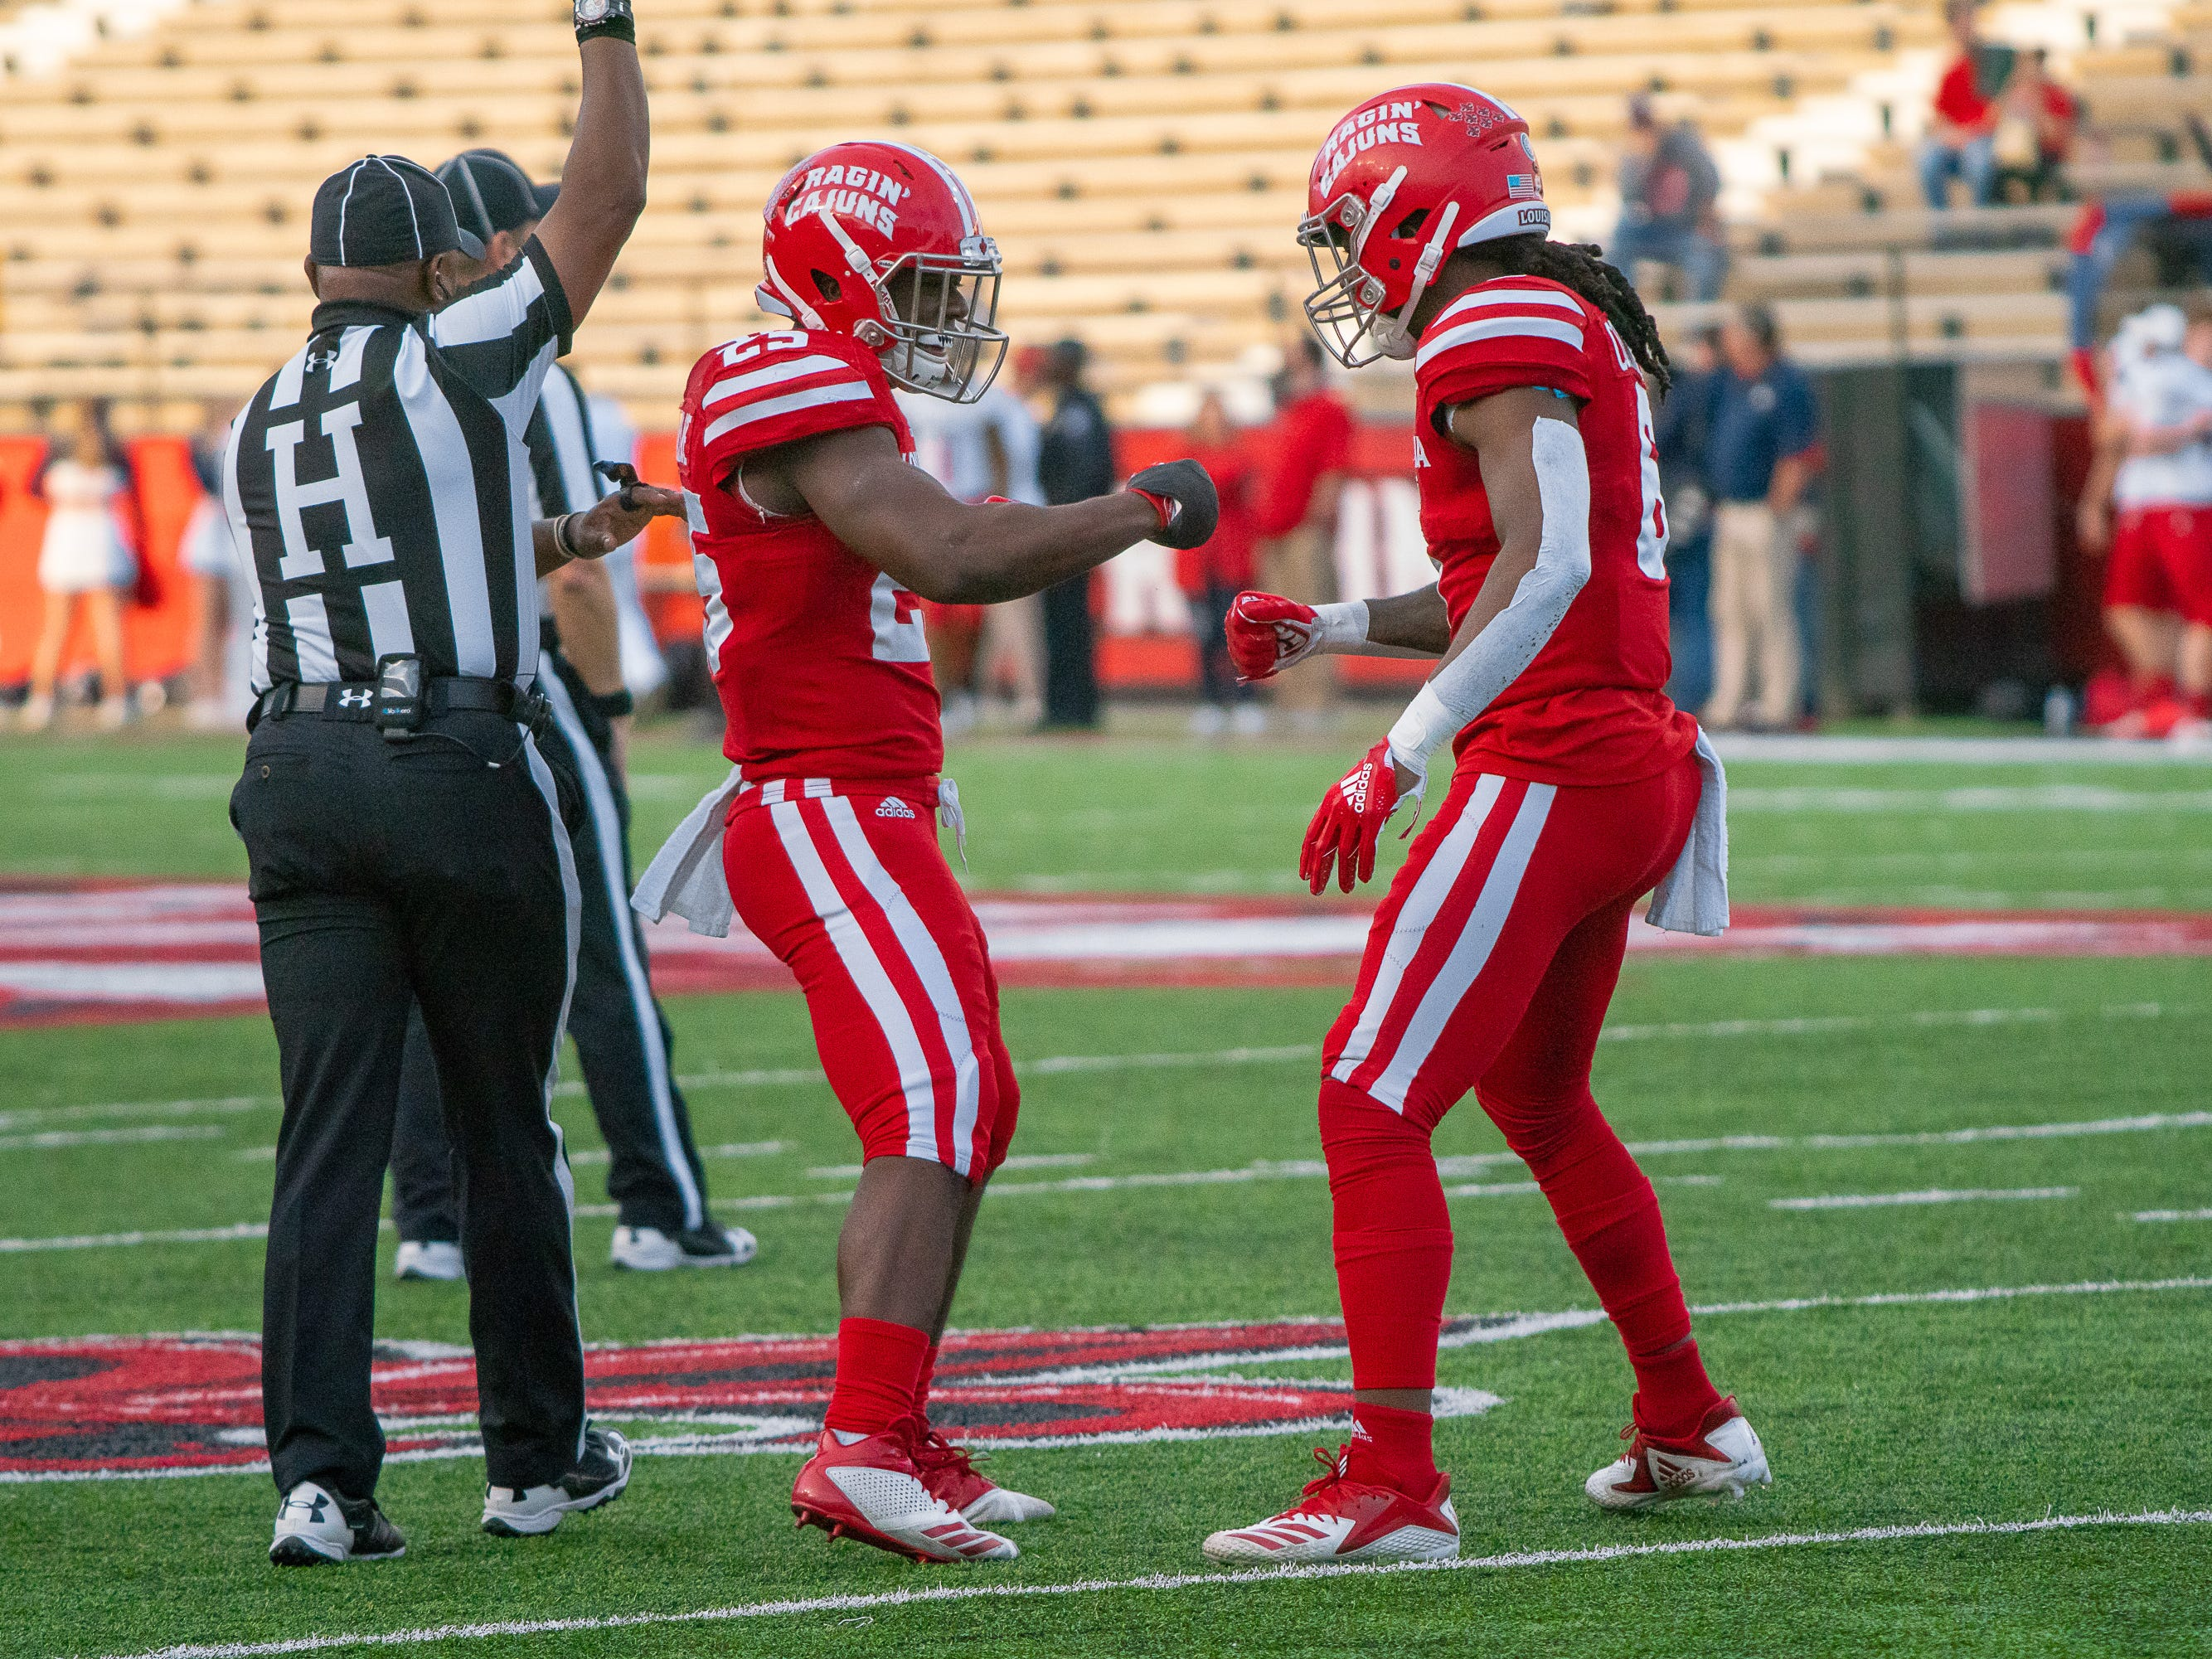 UL's Deuce Wallace celebrates his interception with teammate Corey Turner as the Ragin' Cajuns play against the South Alabama Jaguars at Cajun Field on November 17, 2018.